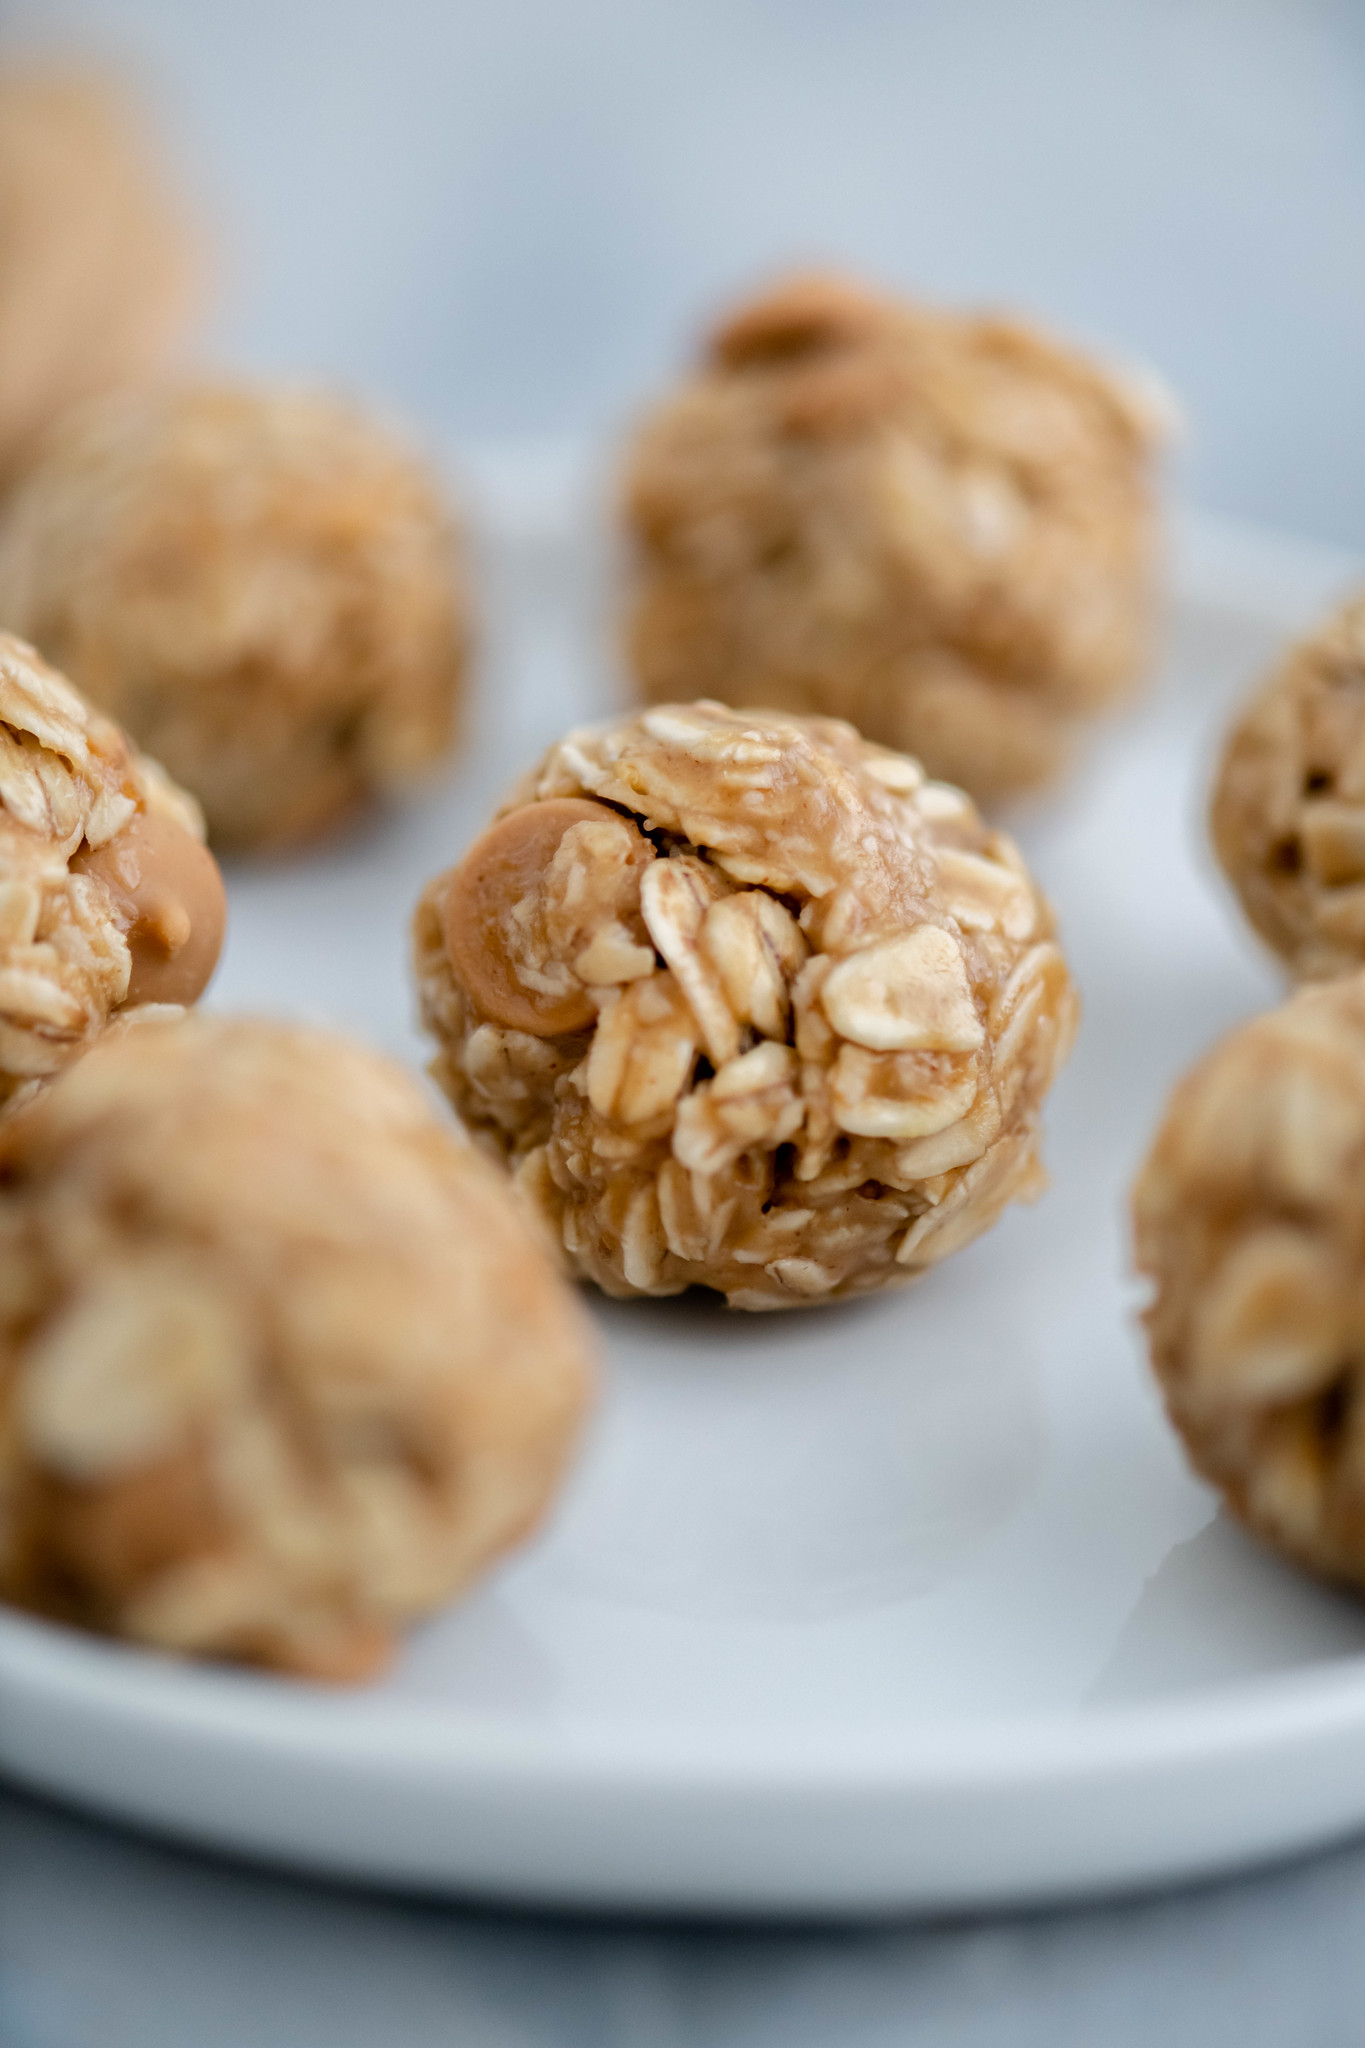 Close up shot of no bake peanut butter ball showing texture of oats and peanut butter chips.